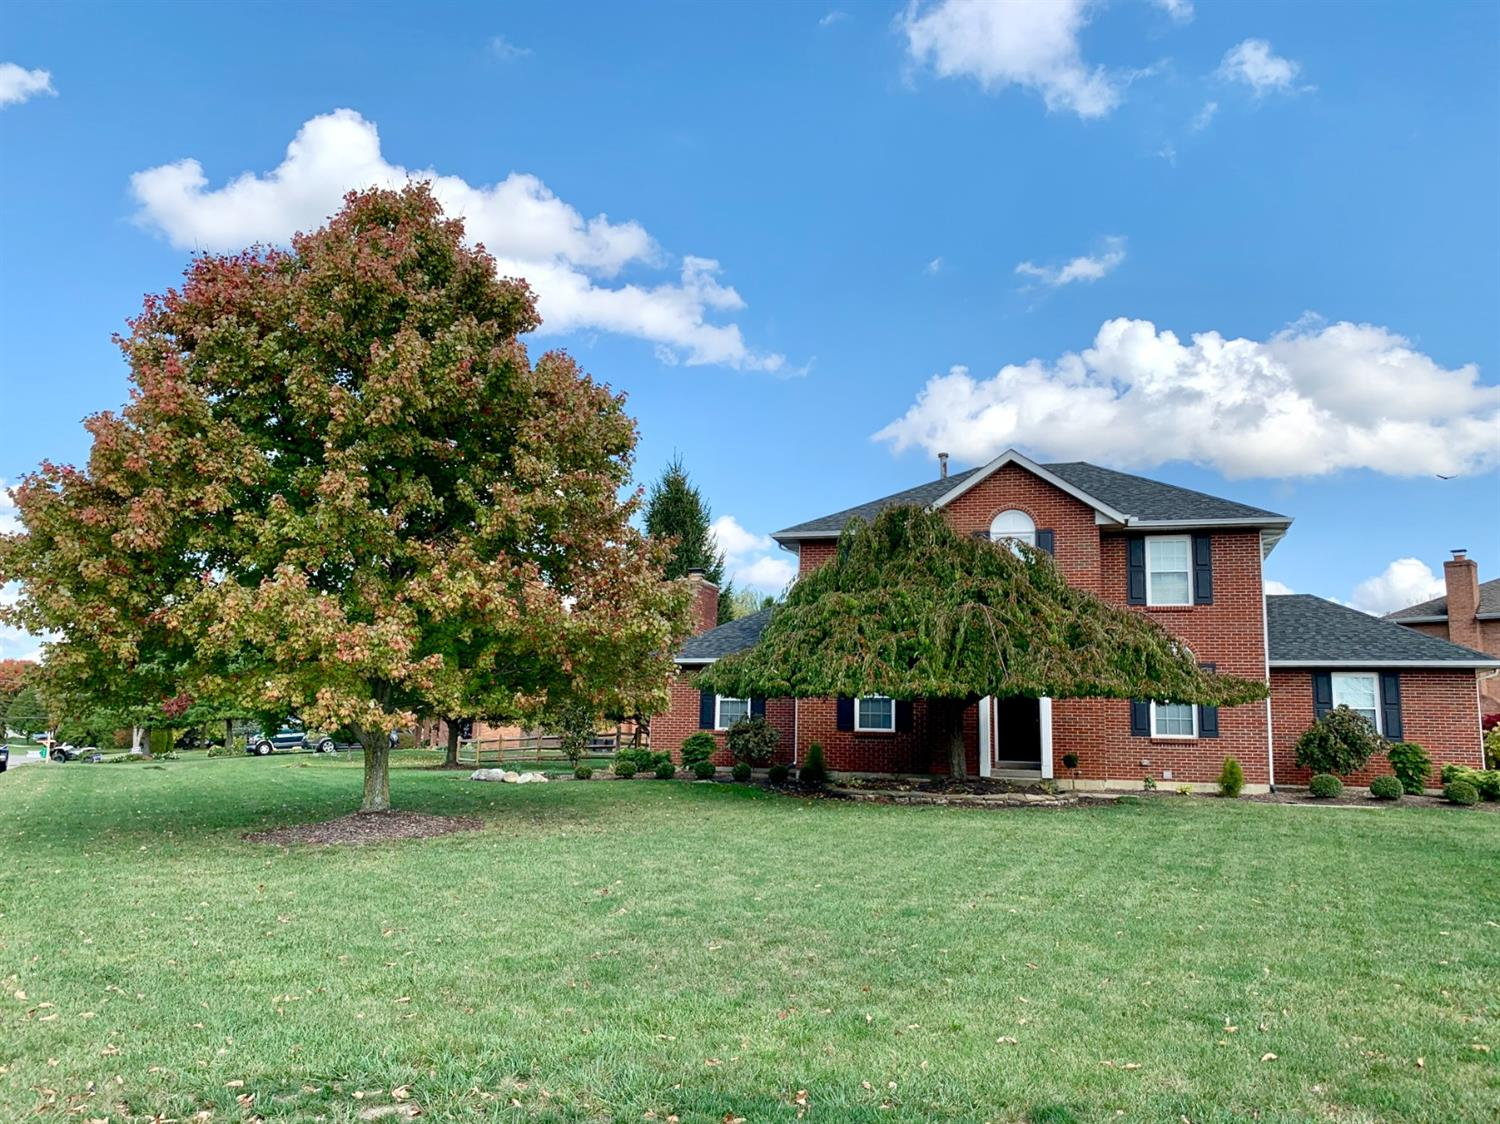 Photo of 7106 Pinemill Drive, West Chester, OH 45069